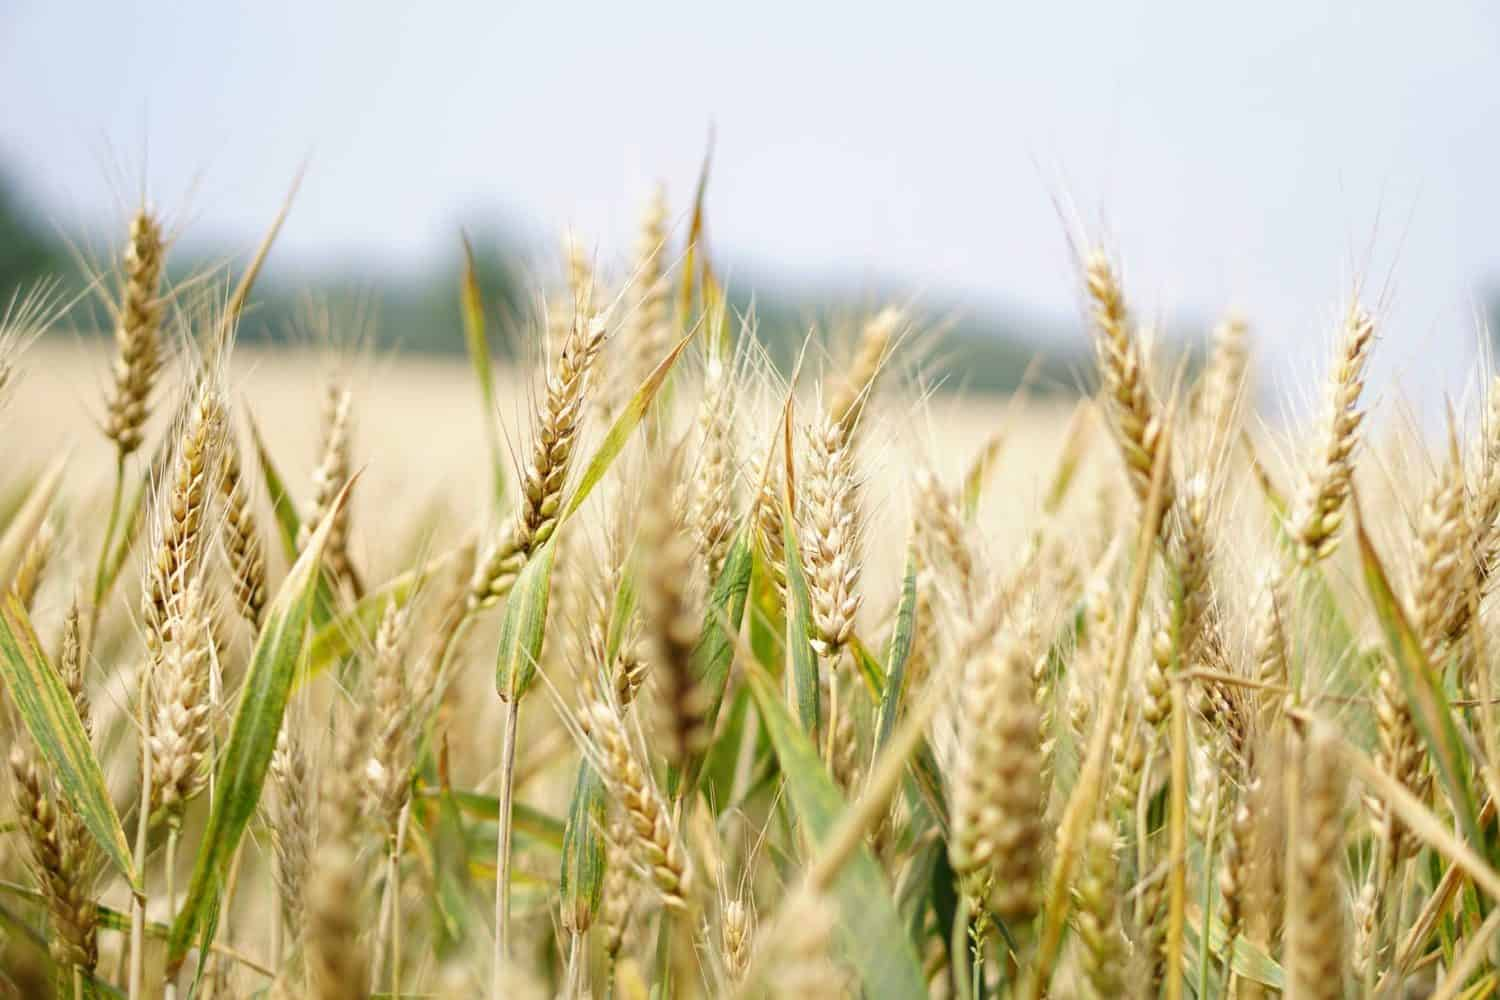 South Africa's grain and oil seed projections for the 2020-2021 marketing season suggests that Mzansi is well on its way to reaching grain self-sufficient status. Photo: Pexels